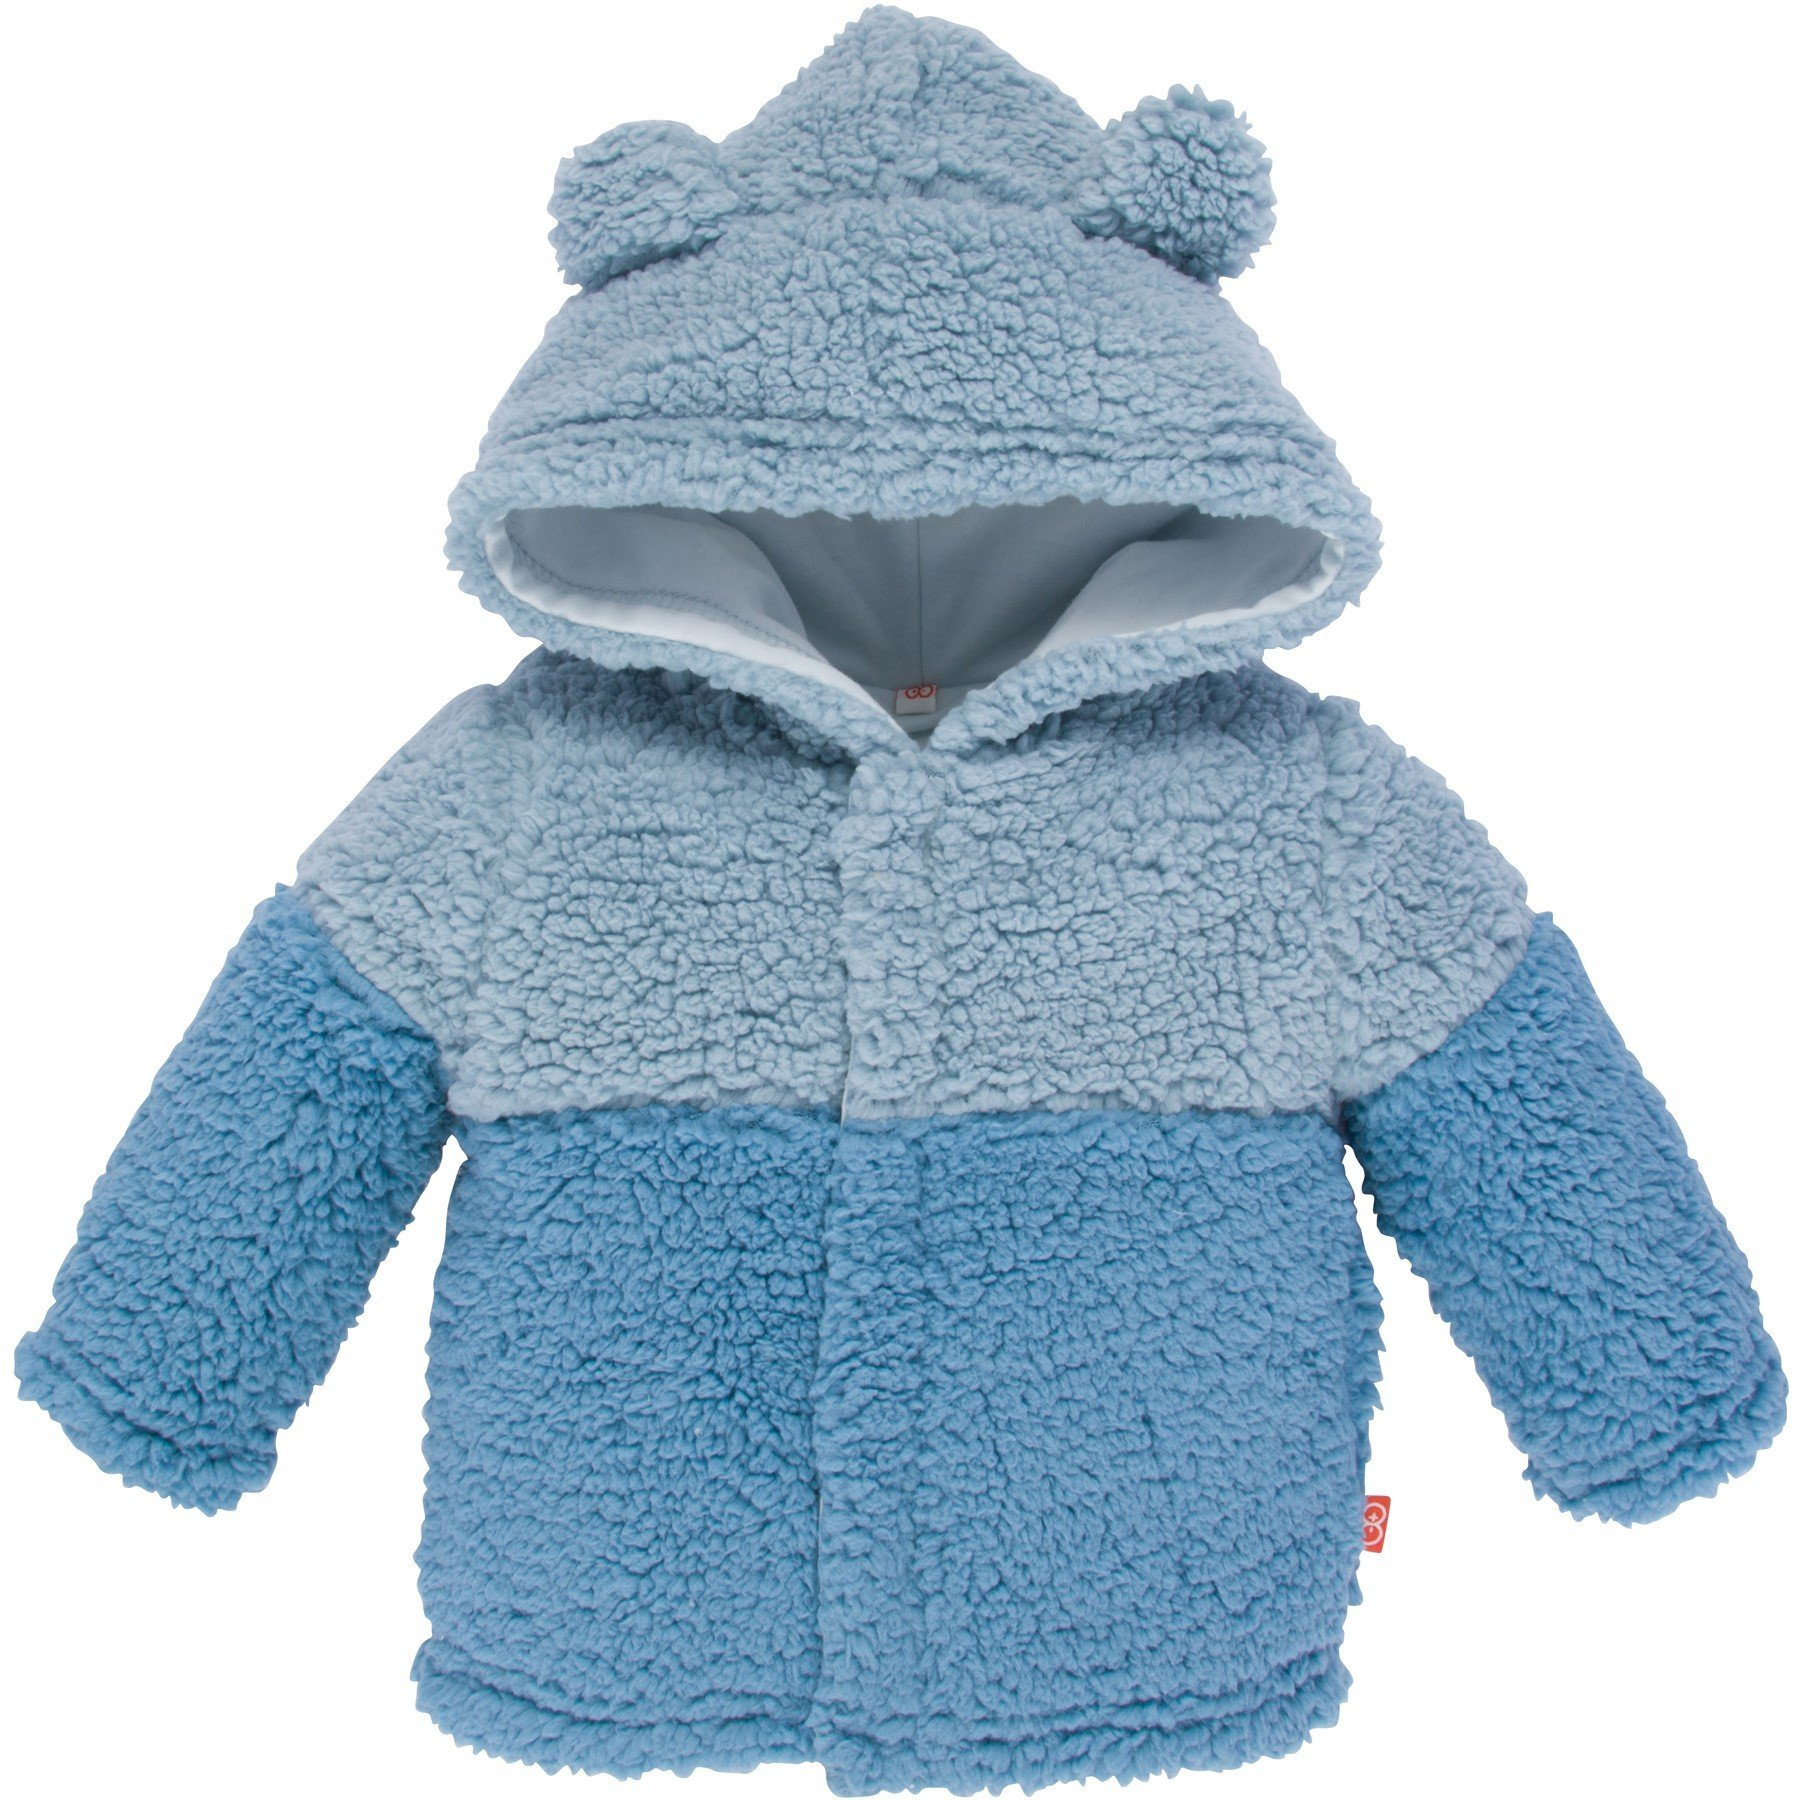 Magnificent Baby Baby Boys' Magnetic Smart Bears Ombre Fleece Jacket C, Blue Ombre, 18-24 Months by Magnificent Baby